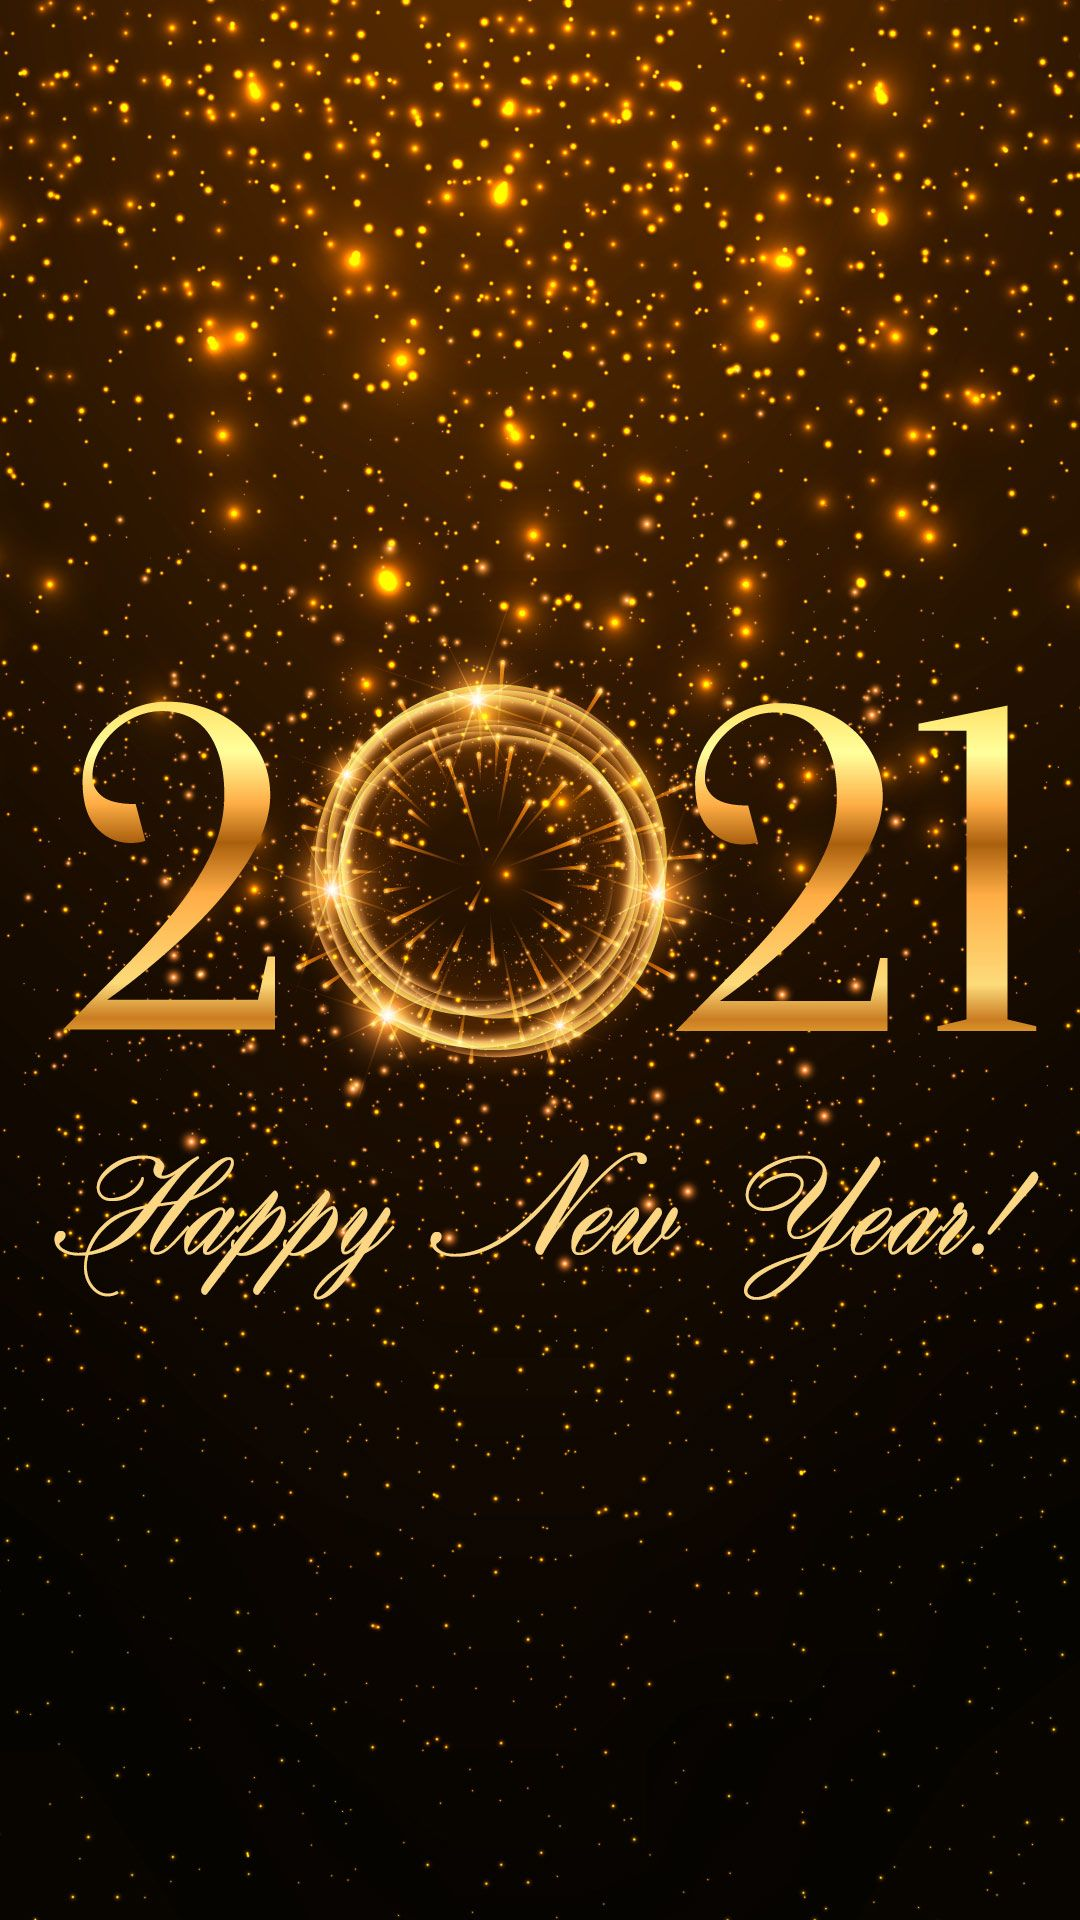 Happy New Year 2021 in 2020 | Happy new year greetings, Happy new year  pictures, Happy new year images